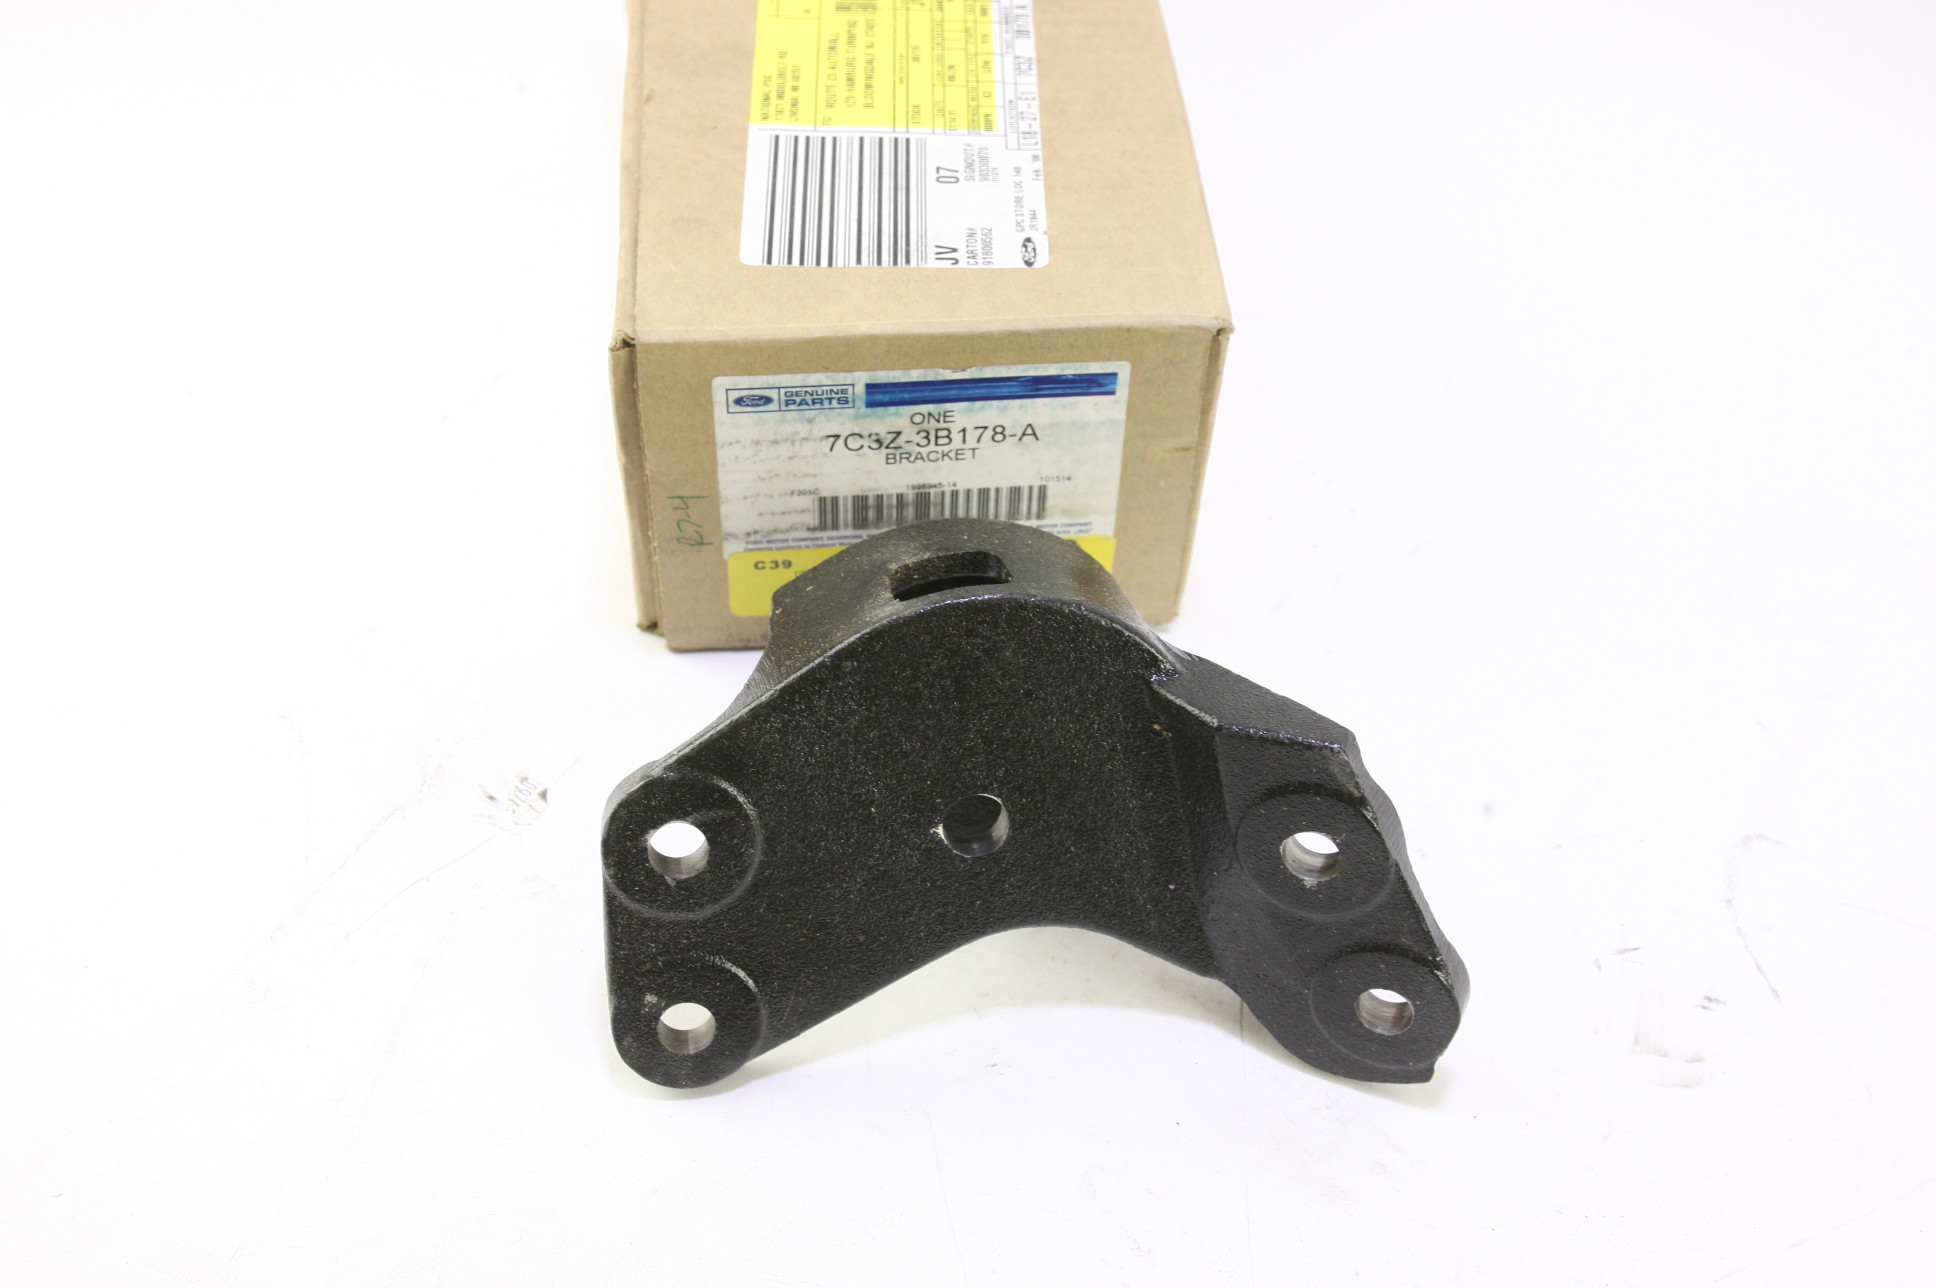 ~ New OEM 7C3Z3B178A Ford Front Suspension Axle Beam Pivot Bracket Right - image 1